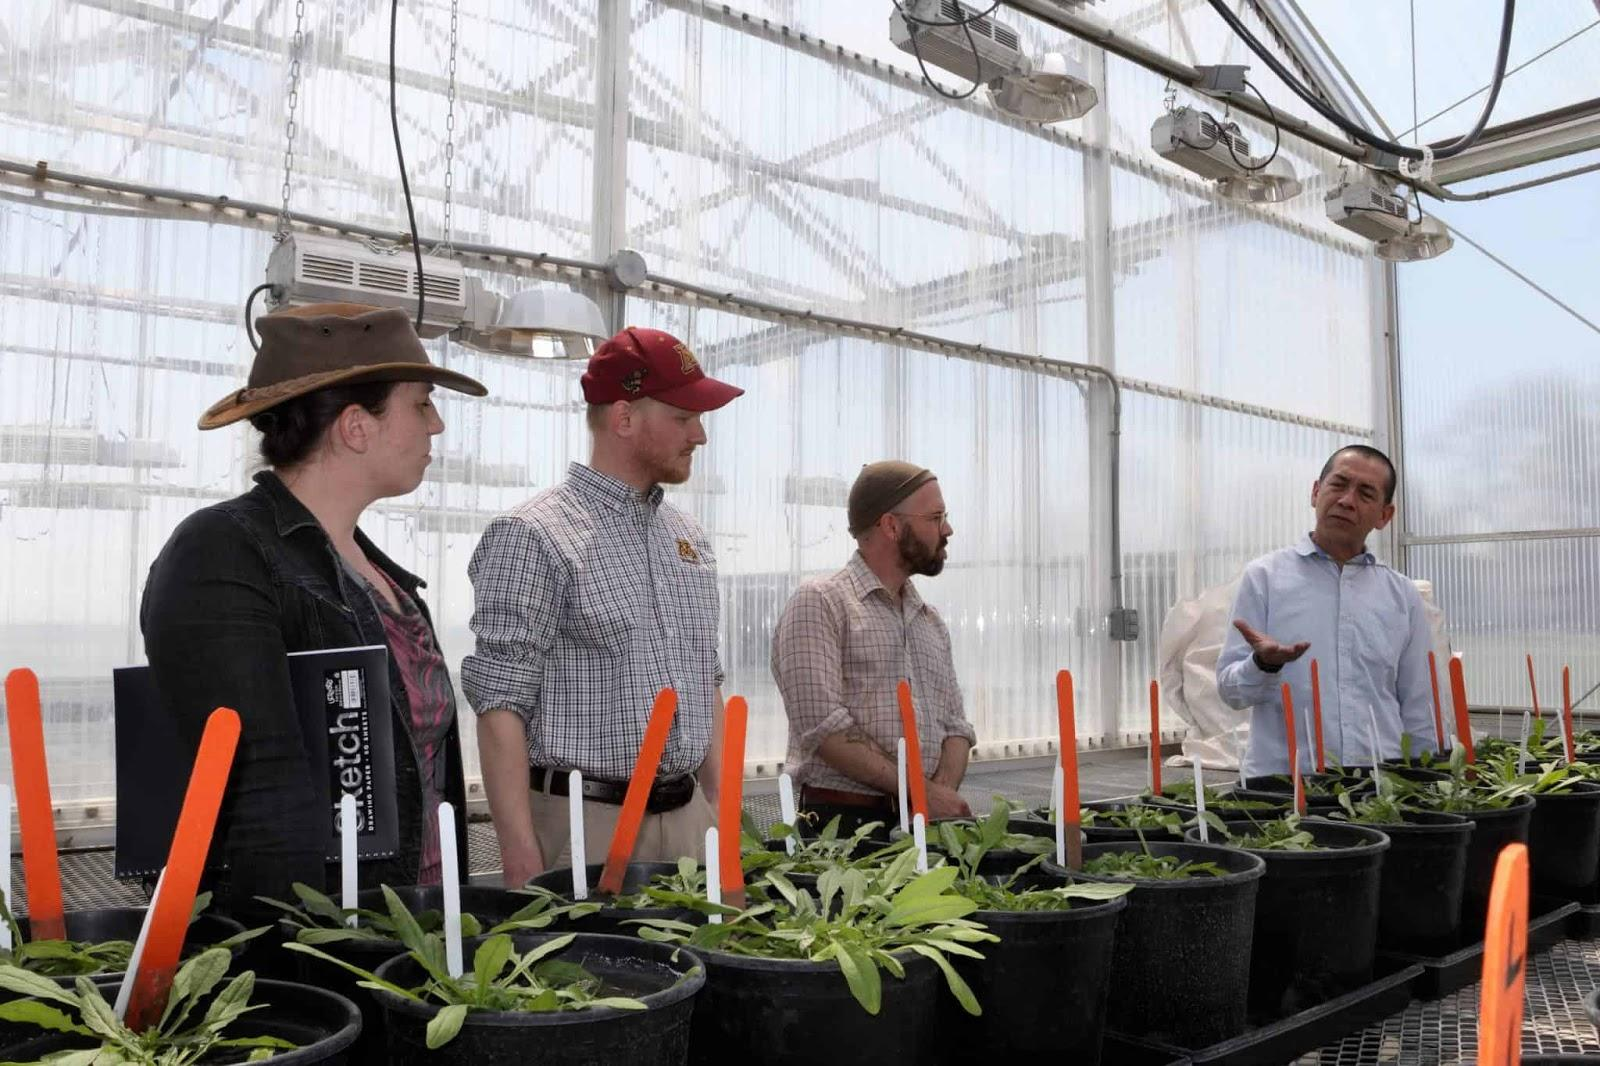 Axel Garcia y Garcia describing camelina nitrogen rate trails to members of the INFEWS Team at the University of Minnesota's Southwest Research and Outreach Center in Lamberton, MN on May 15, 2019.